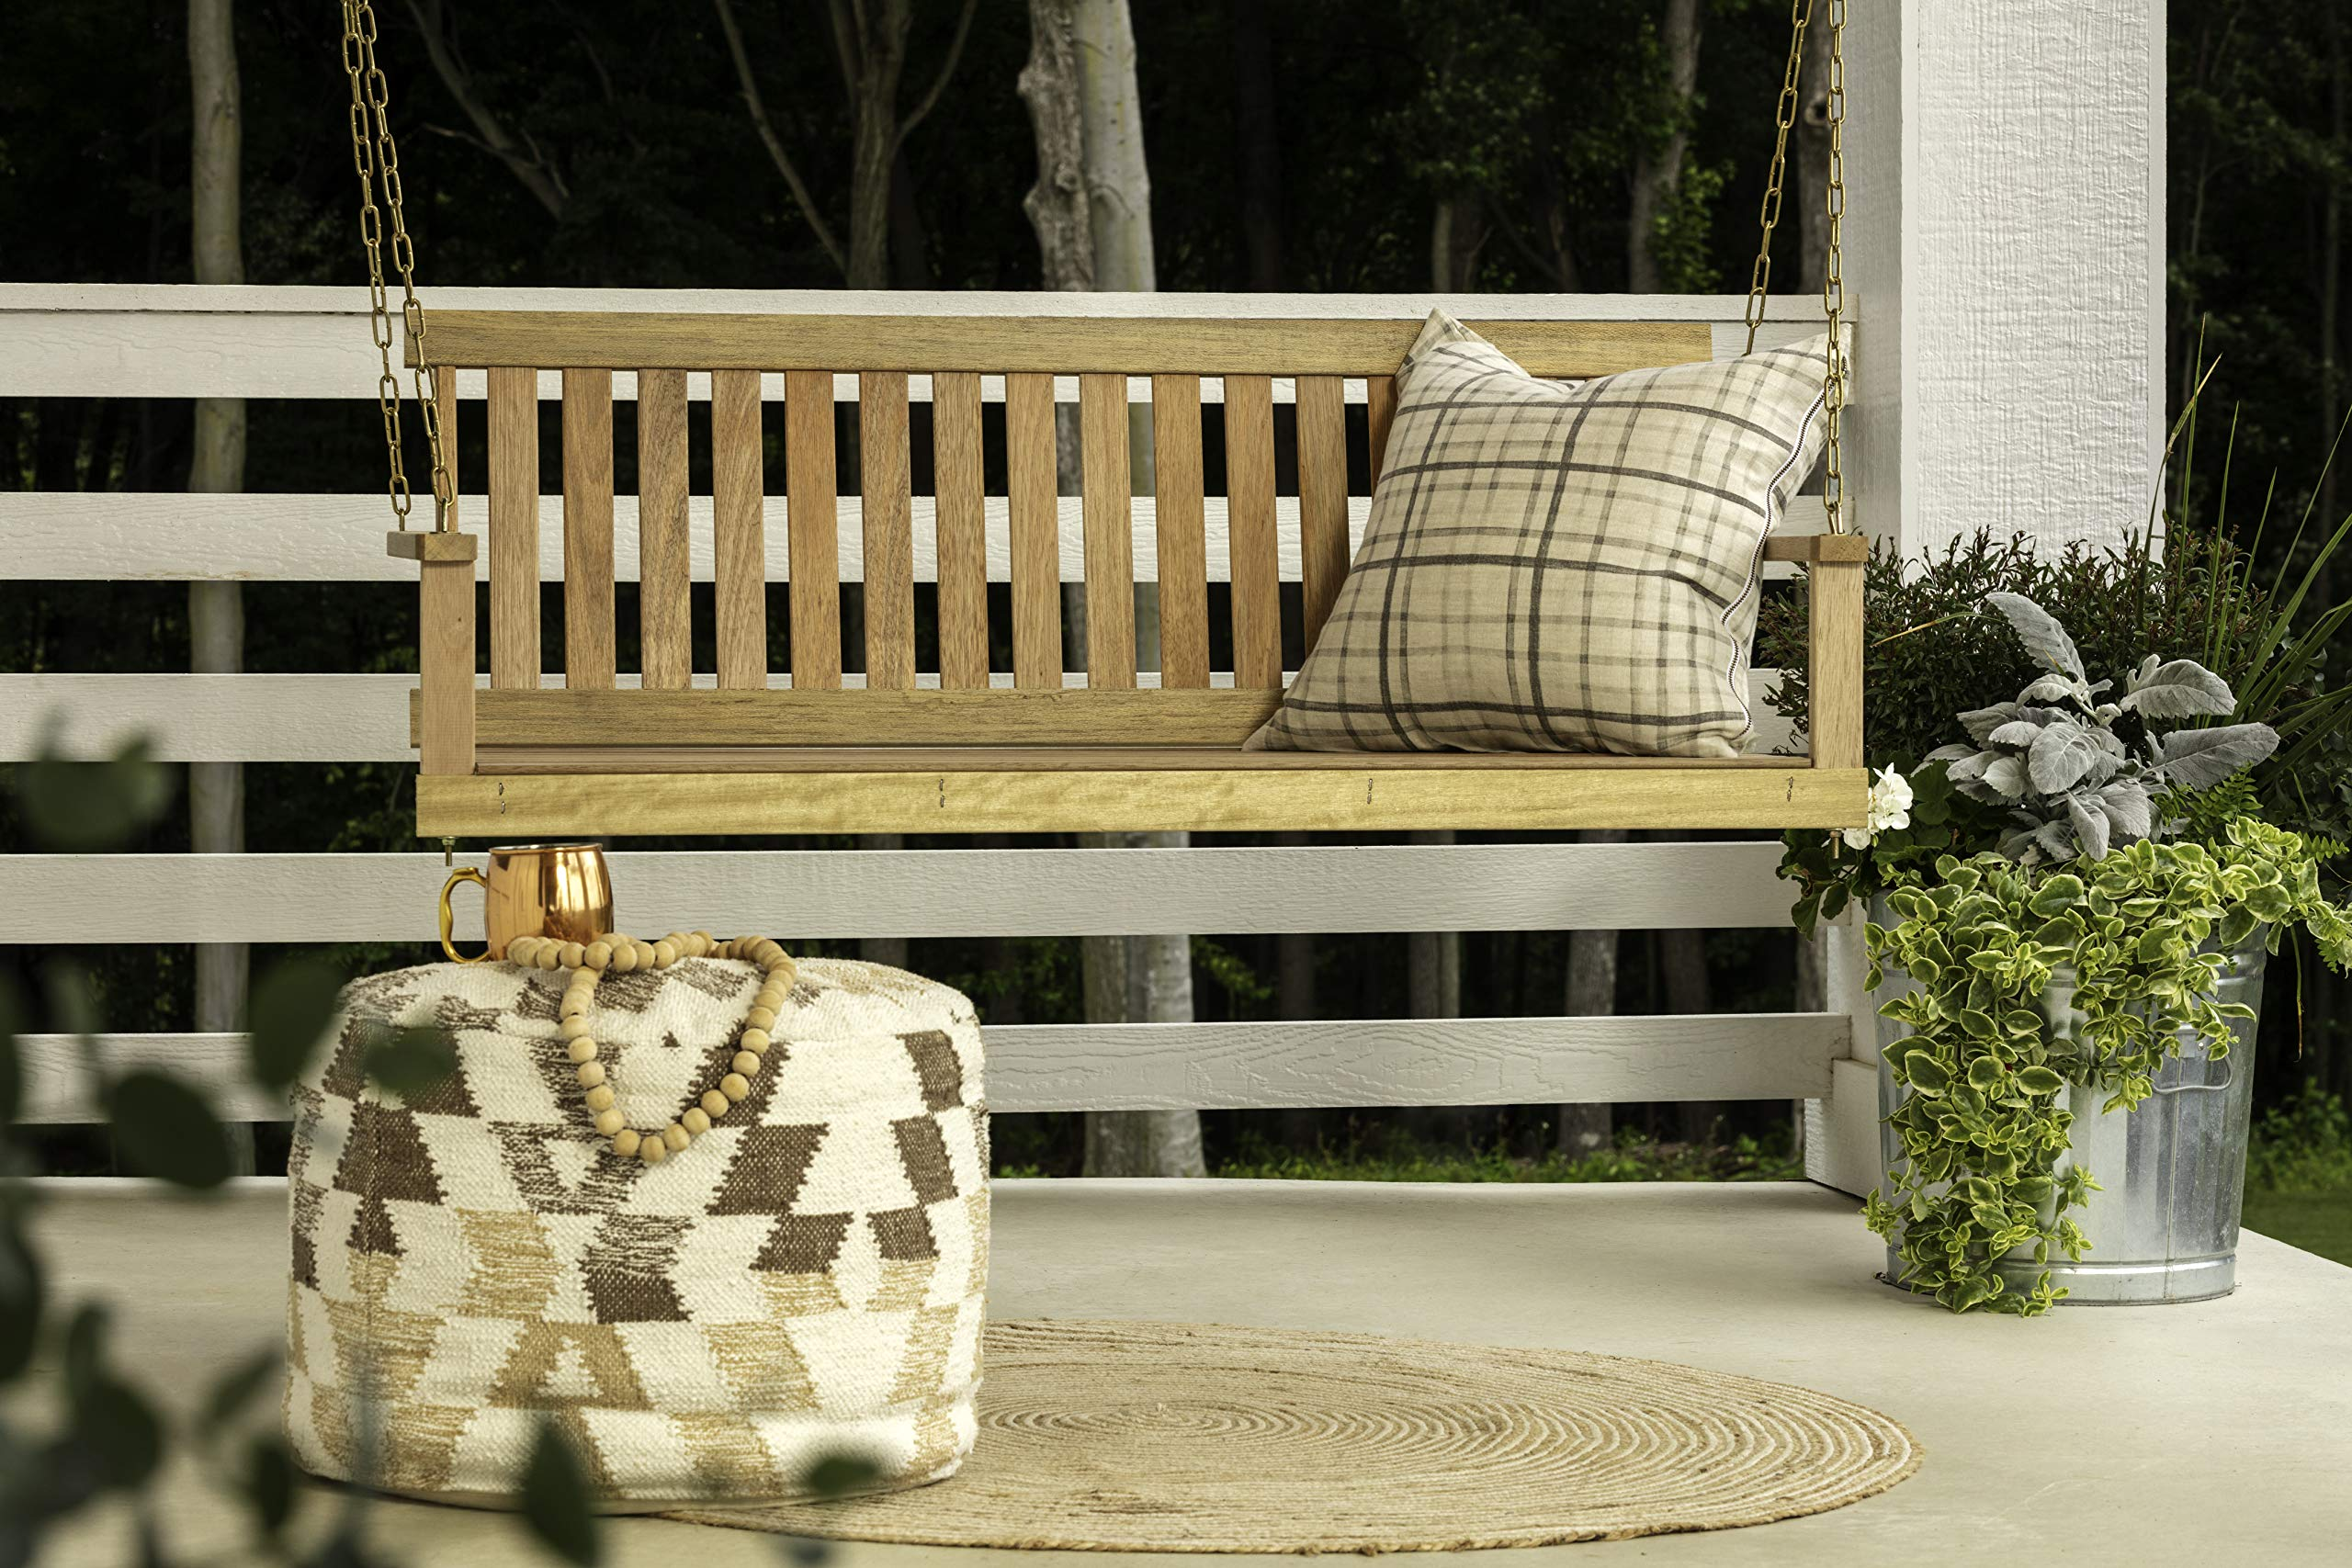 Jack Post Jennings Traditional 4-Foot Swing Seat with Chains in Unfinished hardwood by Jack Post